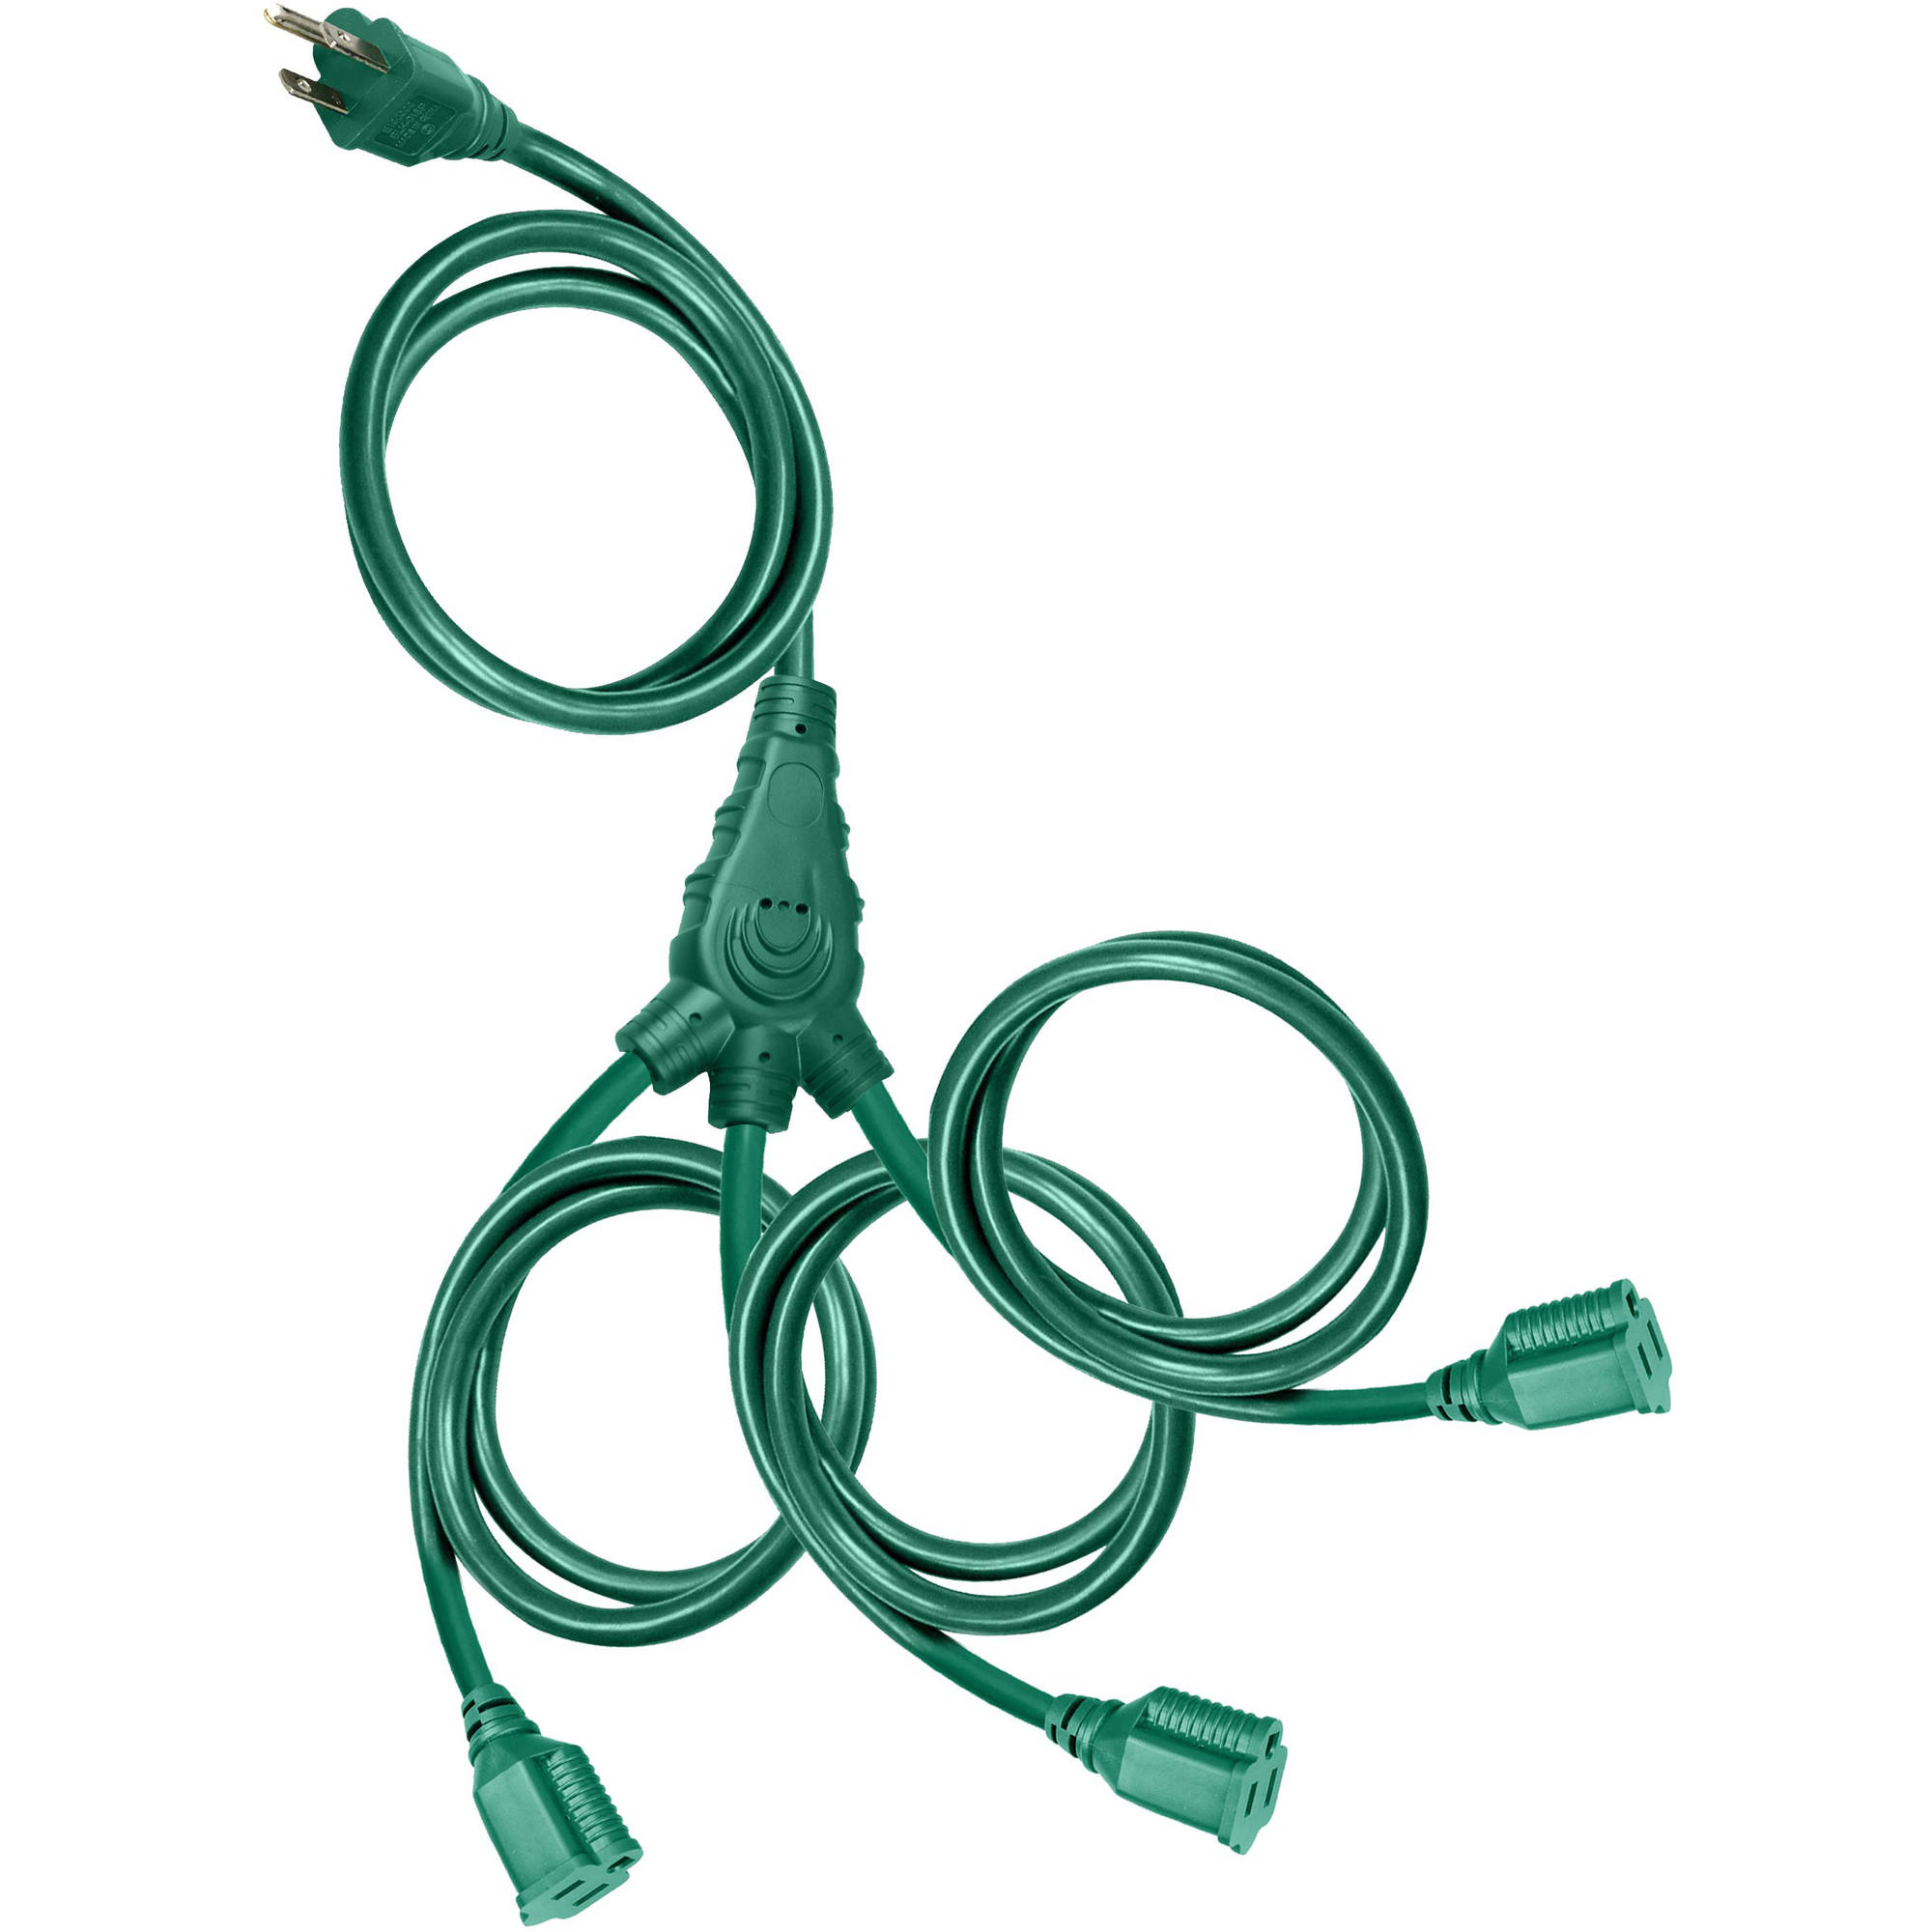 Holiday Time Christmas Lights 25' Cord 3-Outlet Outdoor Multi-Directional Extension Cord